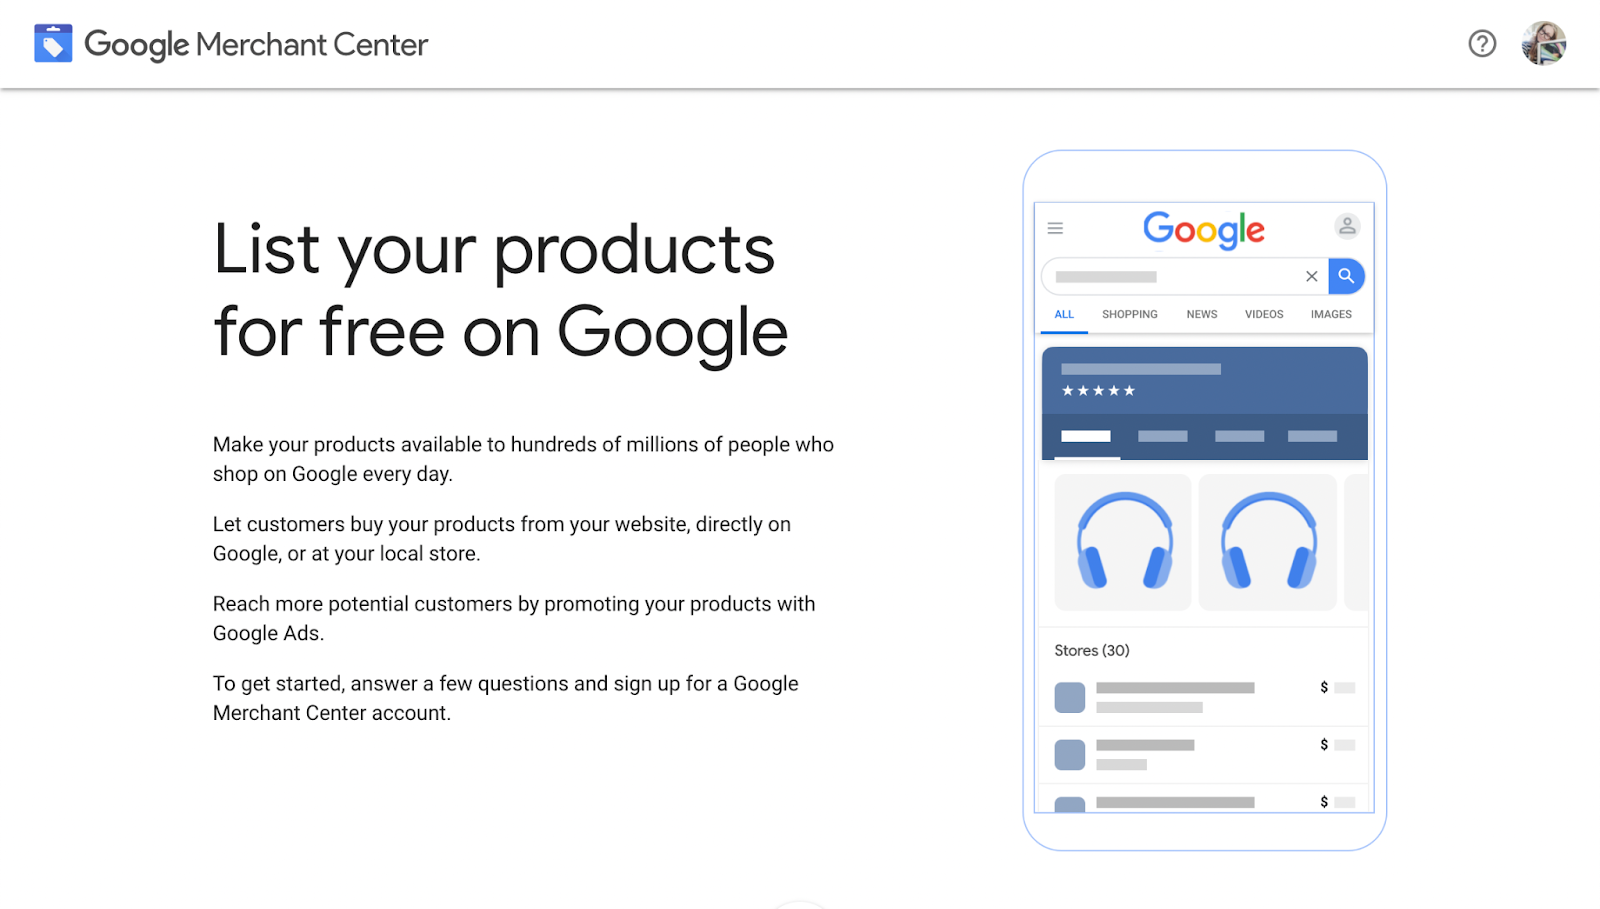 Getting started with Google Merchant Center